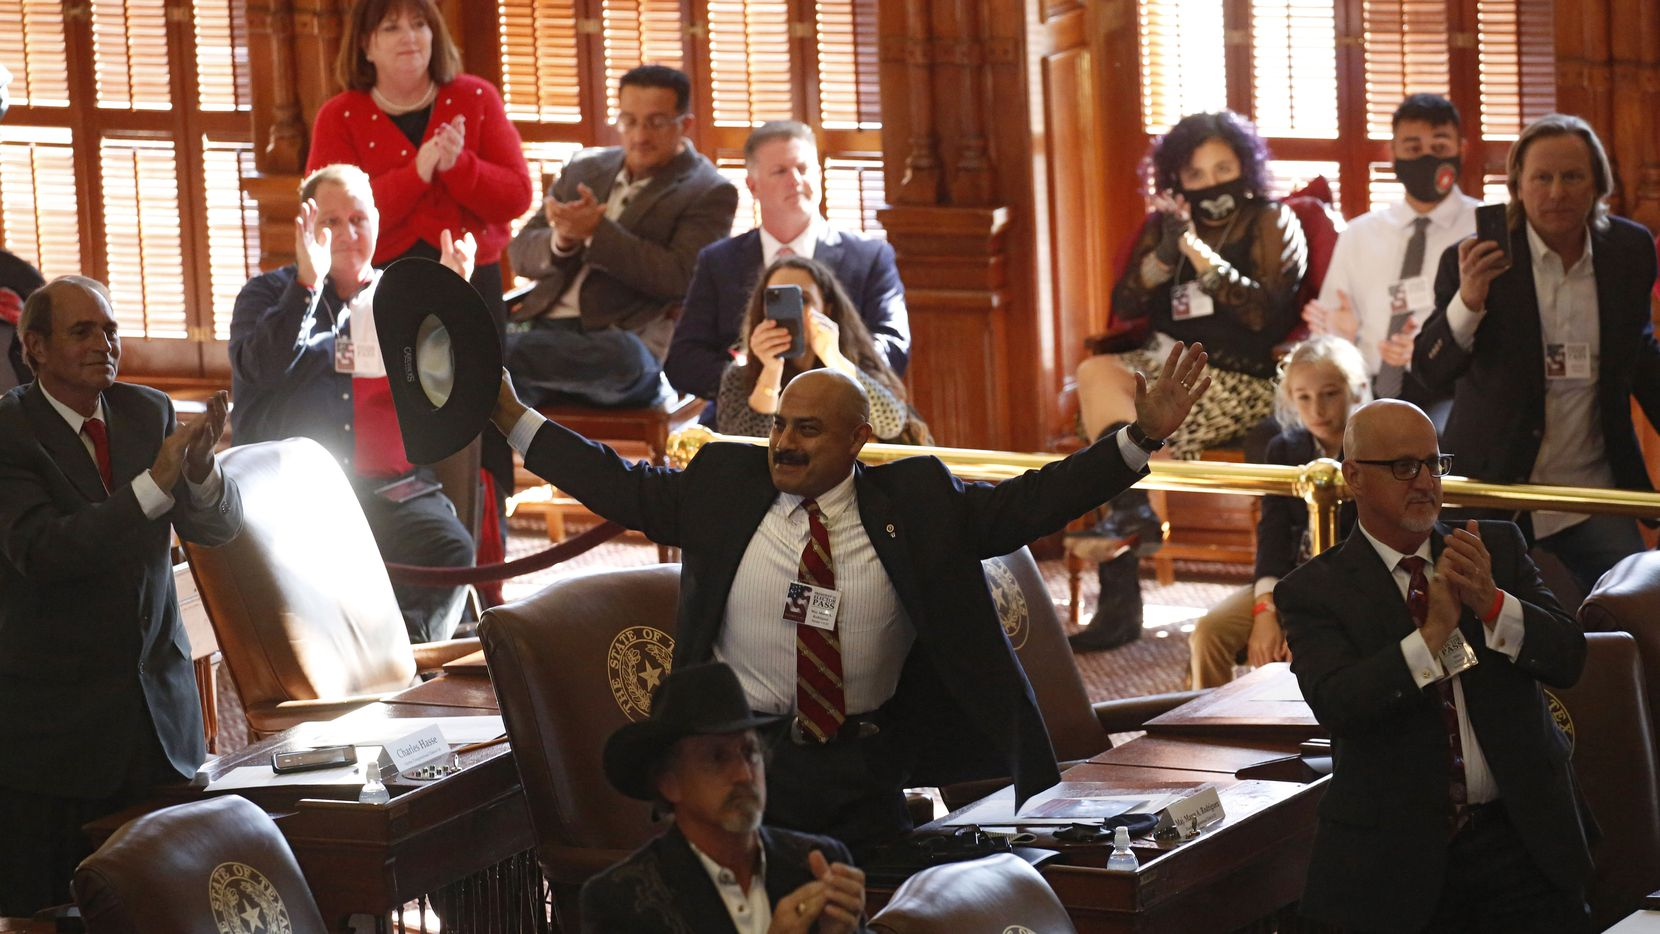 Maj. Marco A. Rodriguez (CD 23) and other Texas electors celebrate after the announcement of all 38 Texas electoral votes for President Donald Trump during the meeting of the presidential electors in the House Chamber of the Texas State Capitol on Monday, December 14, 2020 in Austin. All 38 electors voted for Trump and Vice President Mike Pence. (Vernon Bryant/The Dallas Morning News)